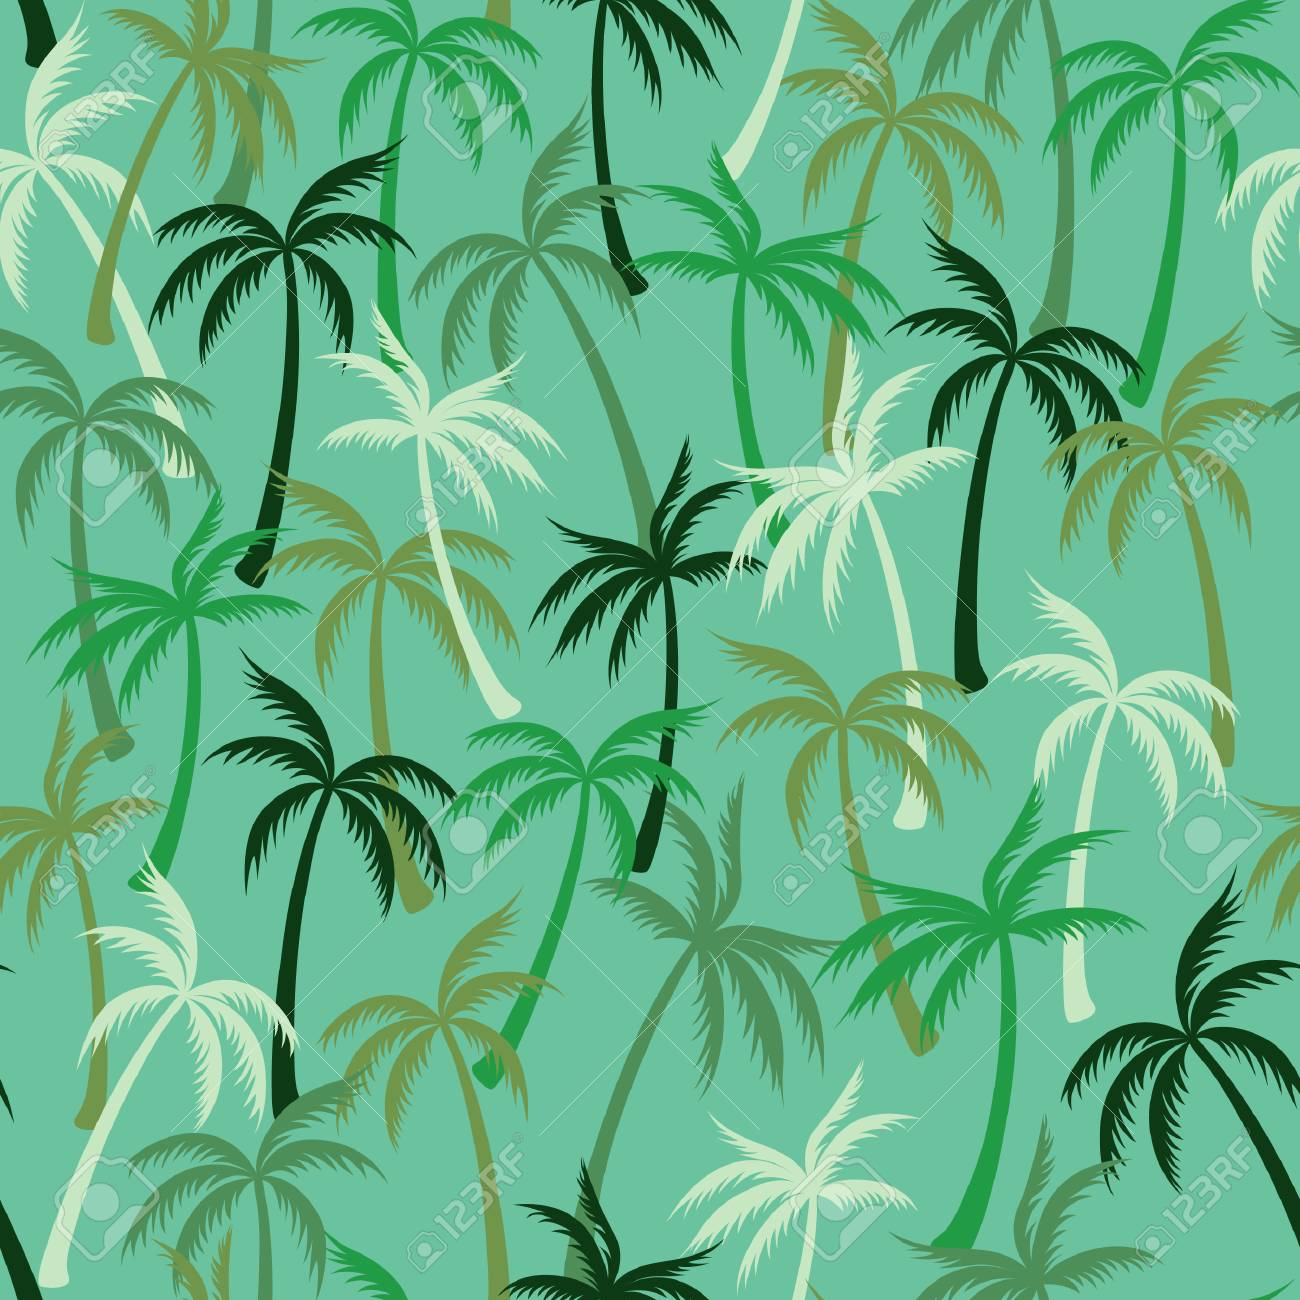 Coconut Palm Tree Pattern Textile Seamless Tropical Forest